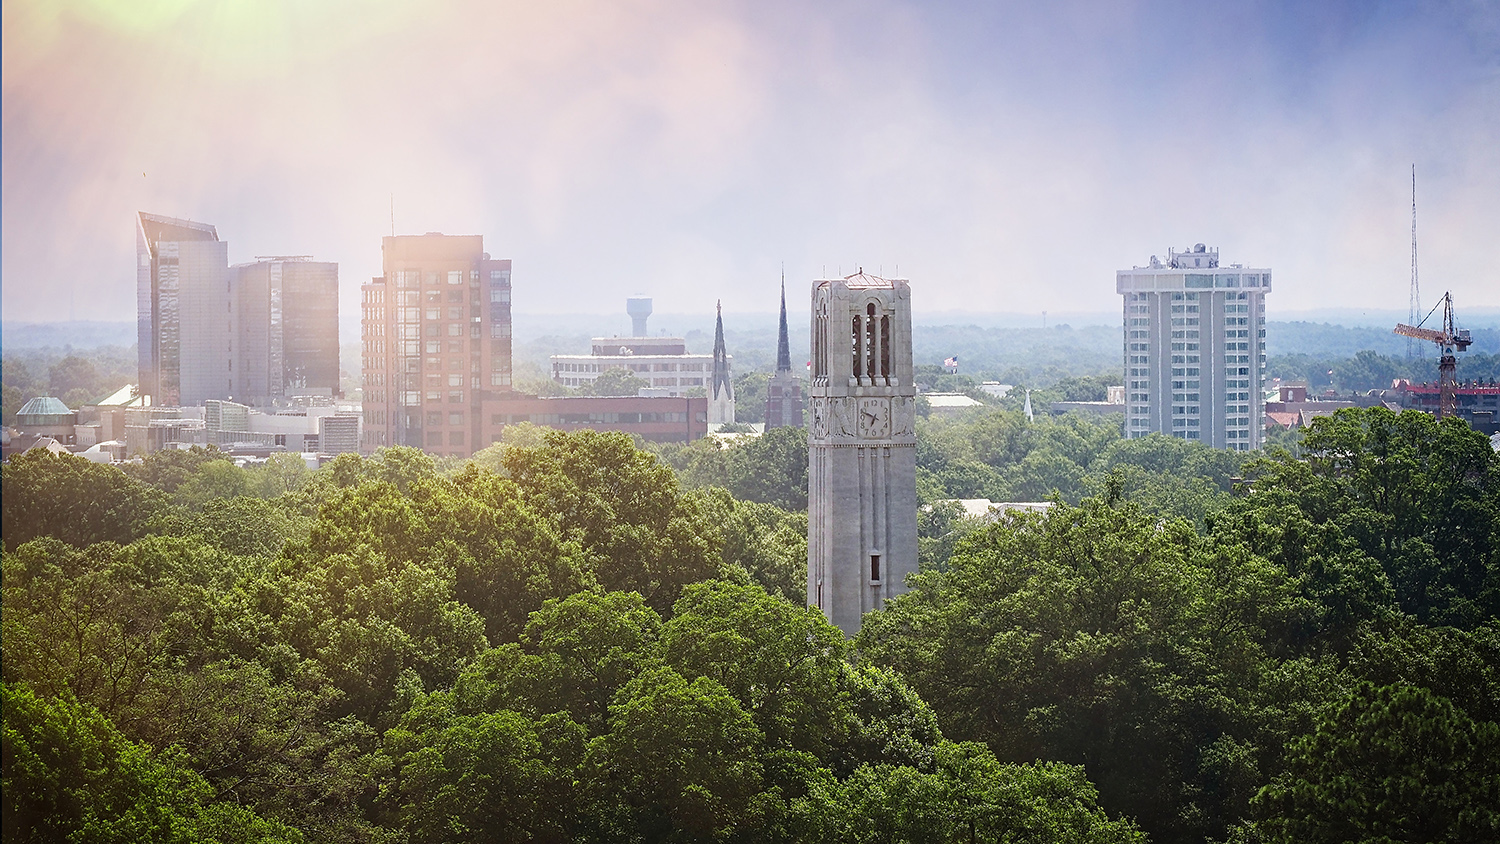 The NC State belltower sits in front of the city of Raleigh skyline as seen from a DH Hill library window.